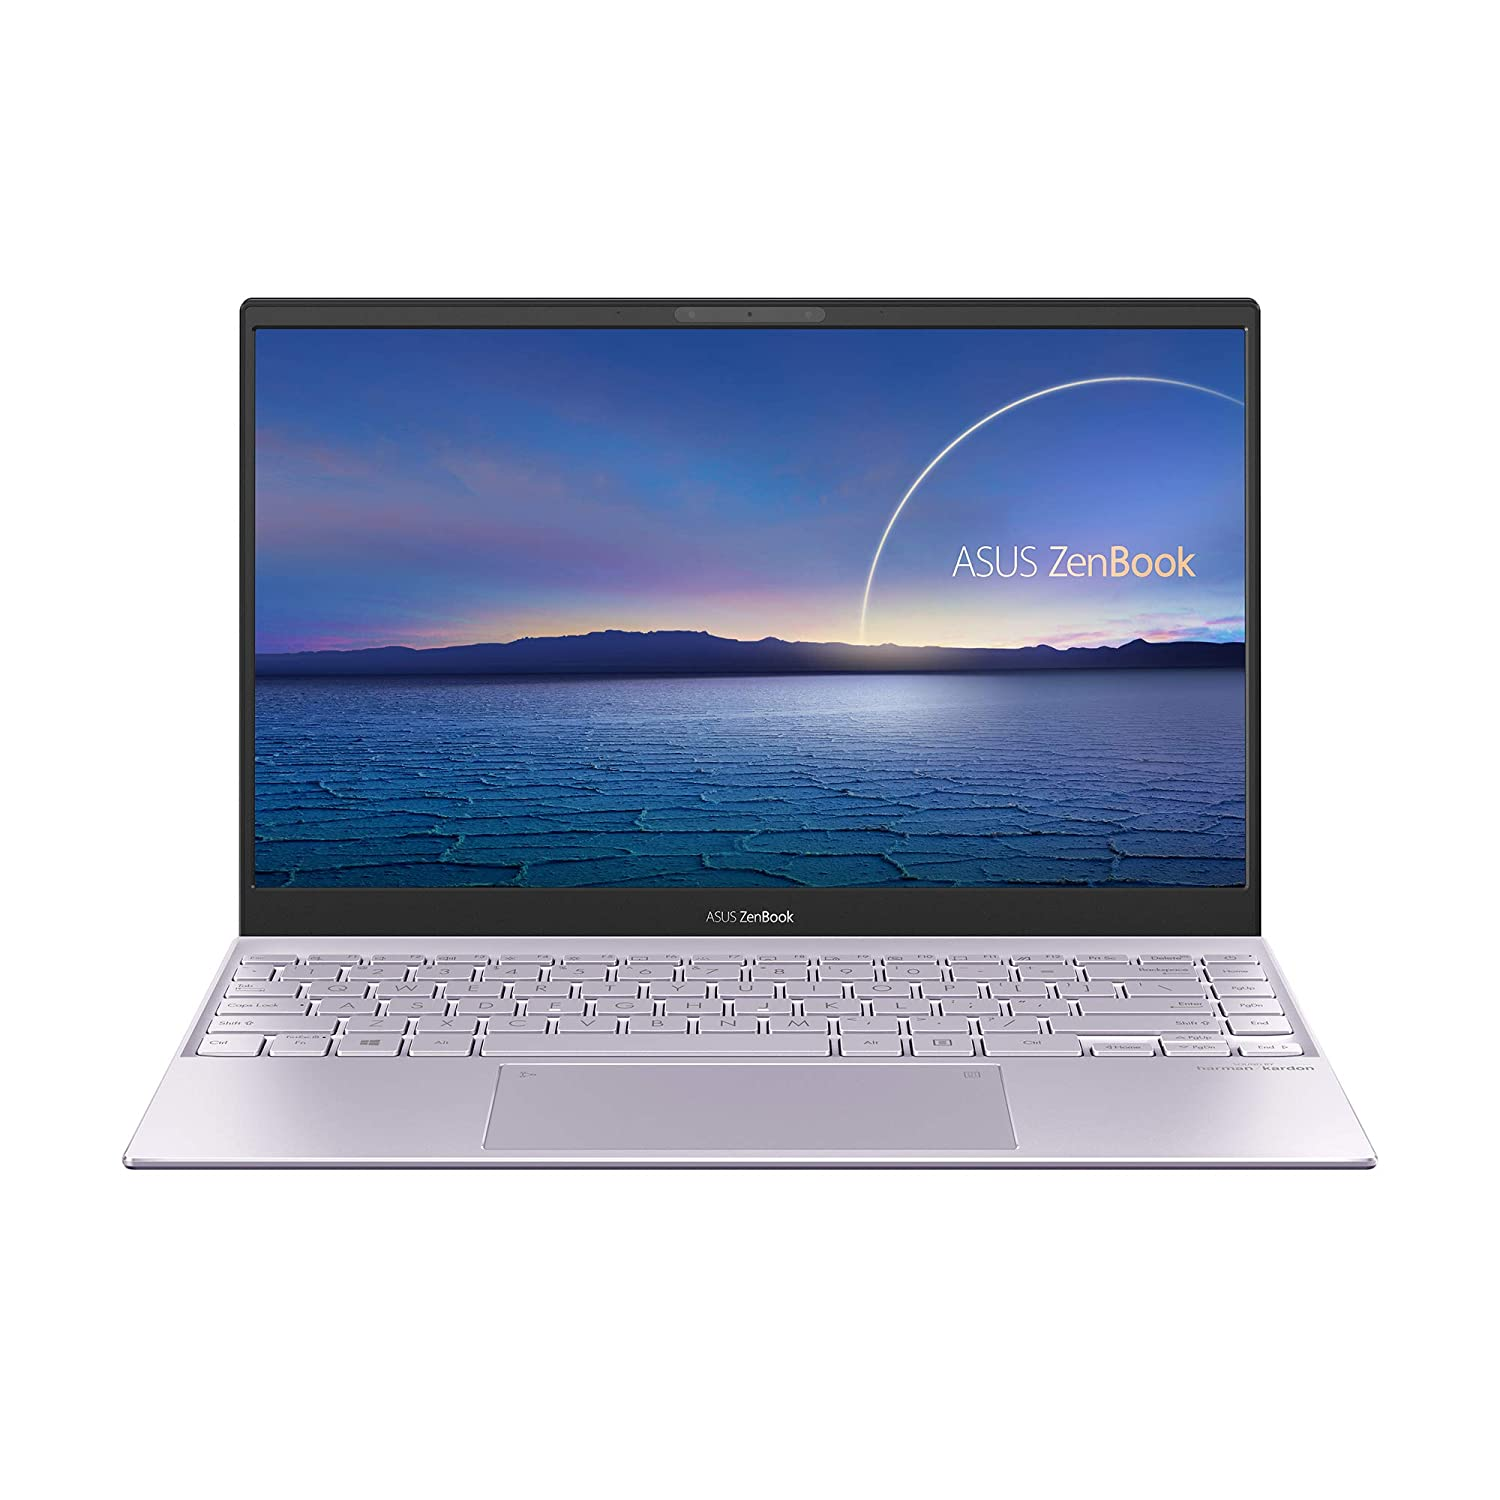 ASUS ZenBook 13 (2020) Intel Core i5-1135G7 11th Gen 13.3-inch FHD